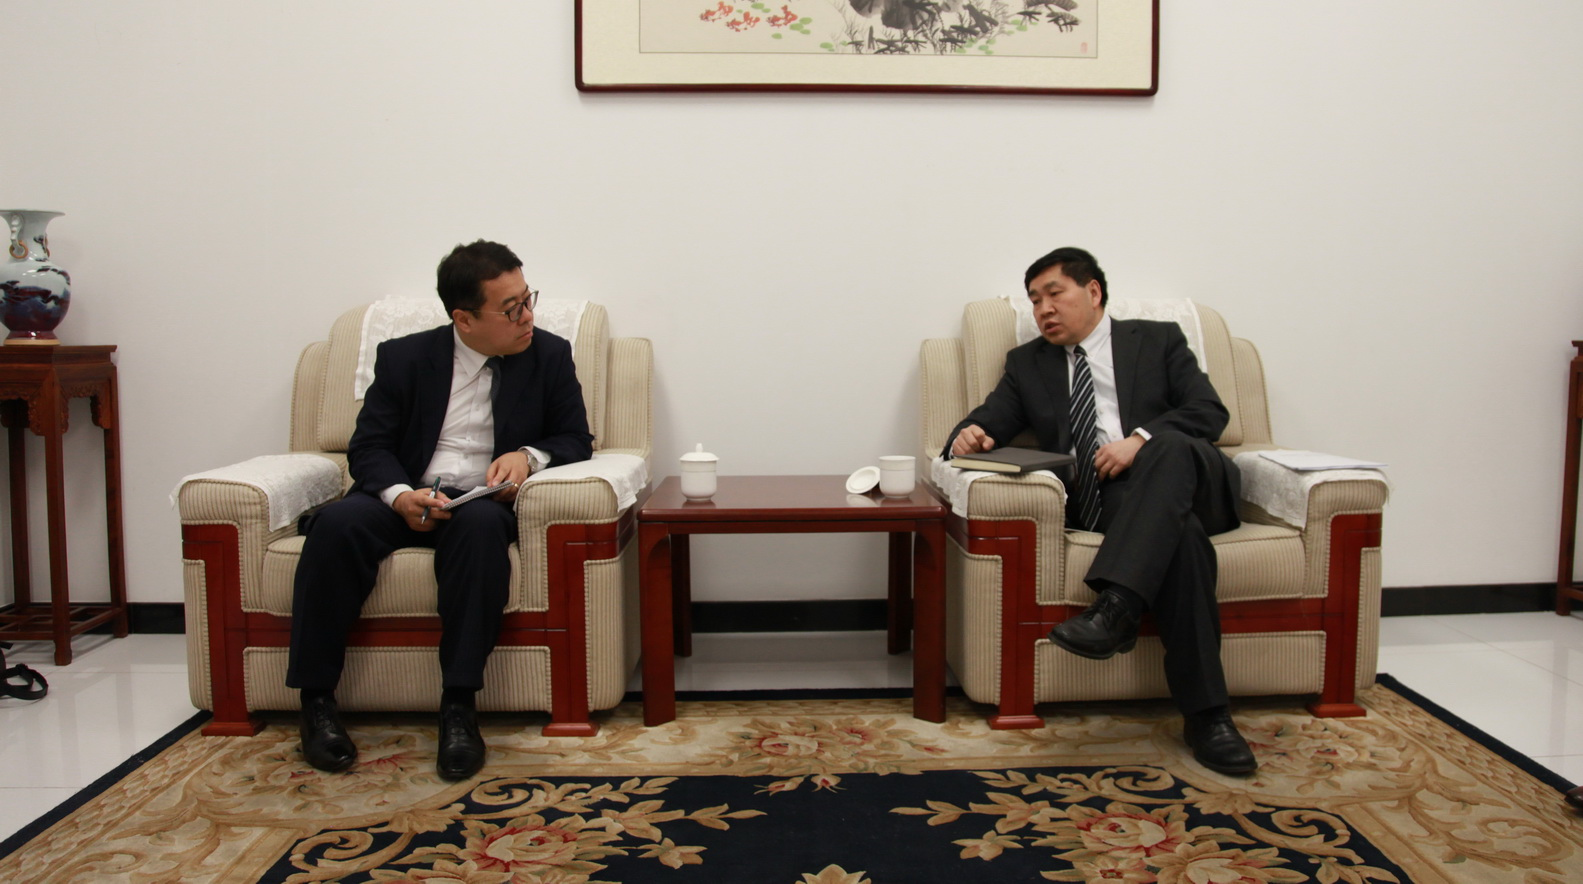 CCIEE Deputy Chief Economist Zhang Yongjun Meet with the Counselor of the Korean Embassy in Beijing